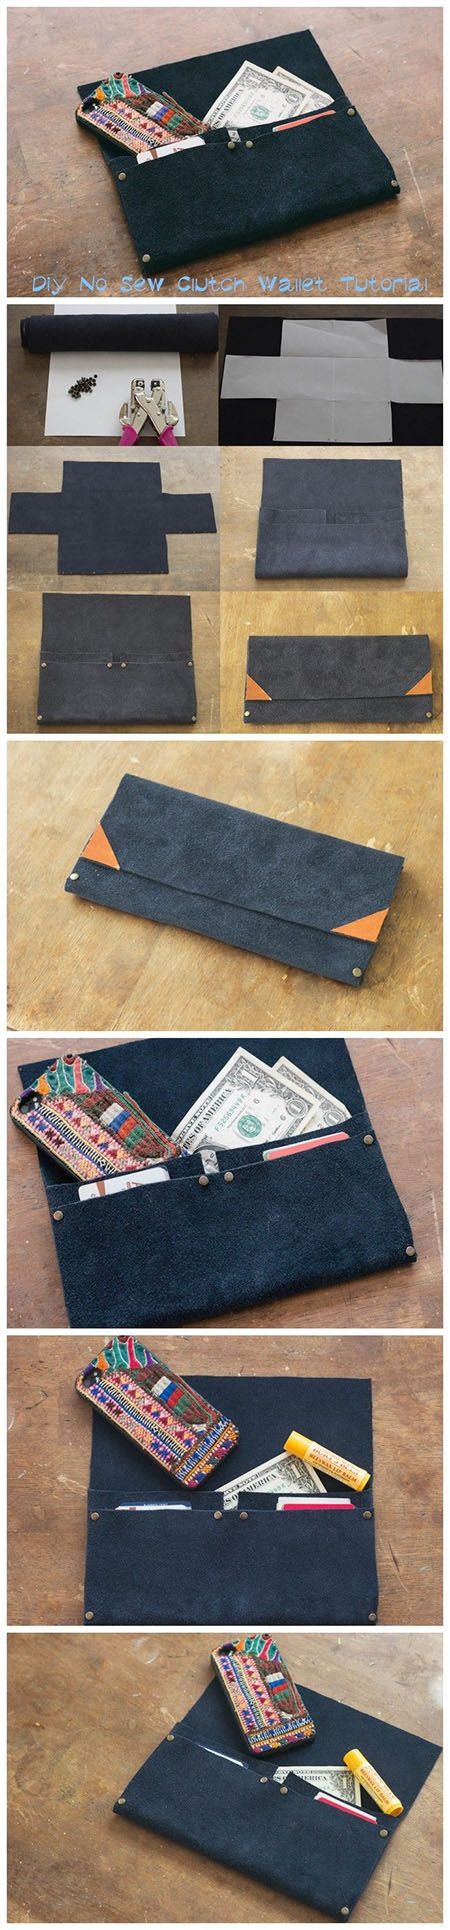 1 Diy No Sew Clutch Wallet Tutorial8d882b | DIY